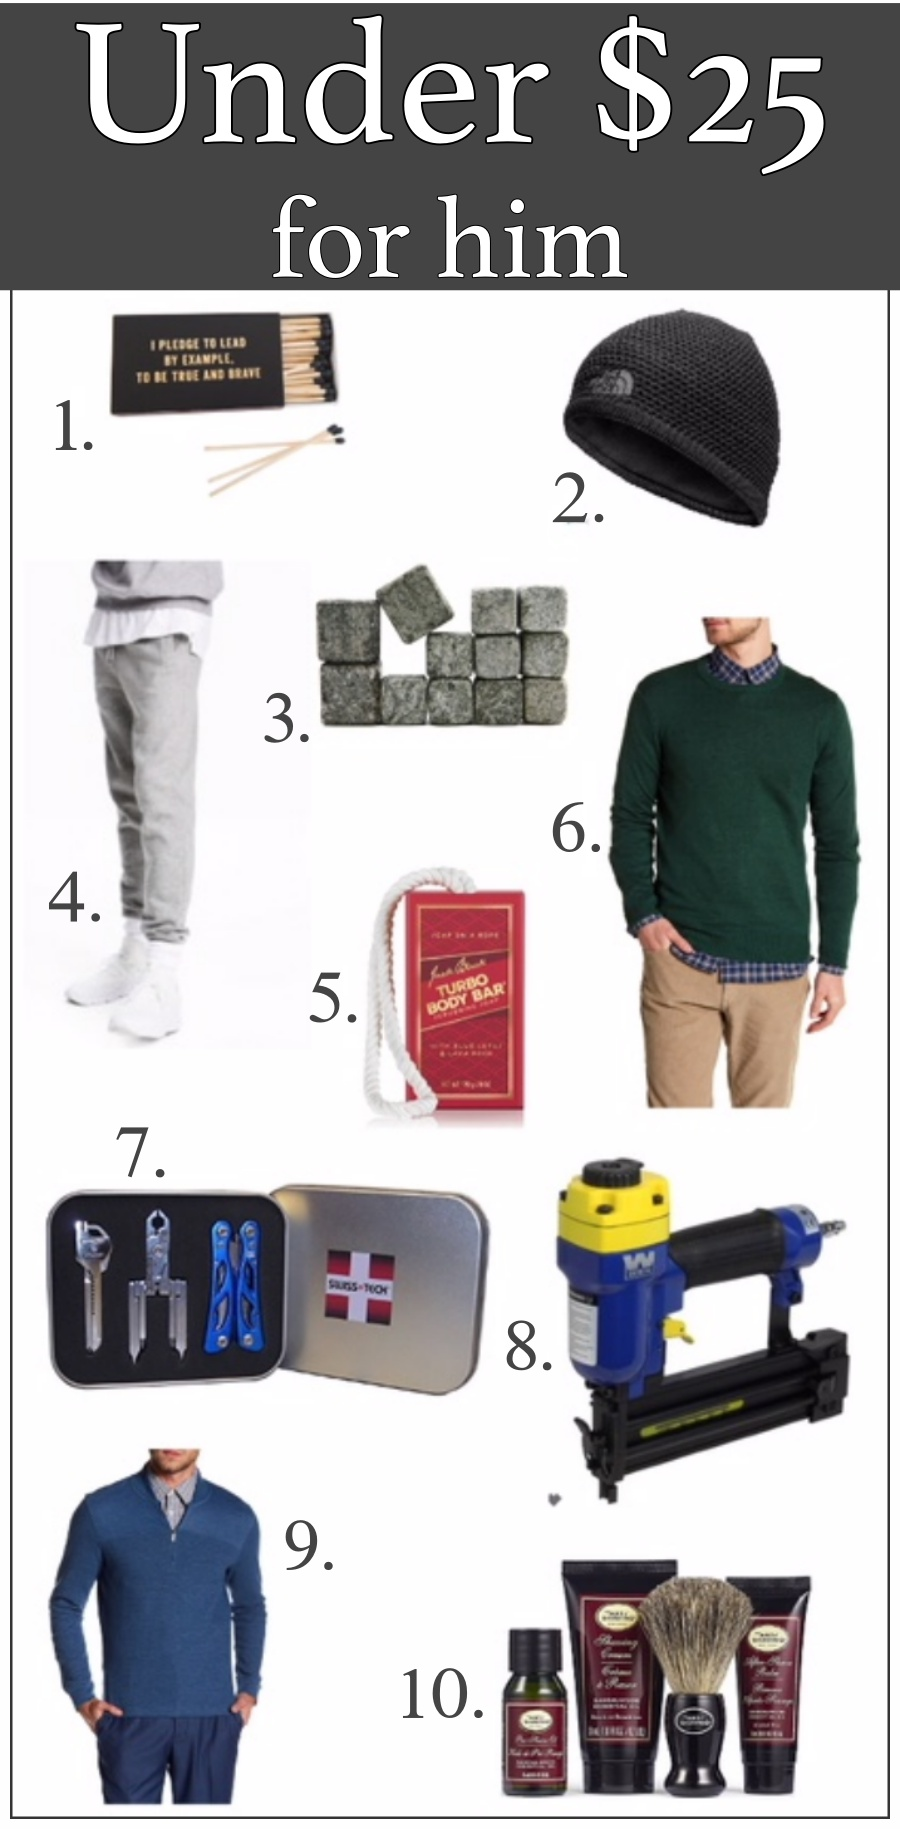 Holiday Gift Guides for everyone- under $25 for Him